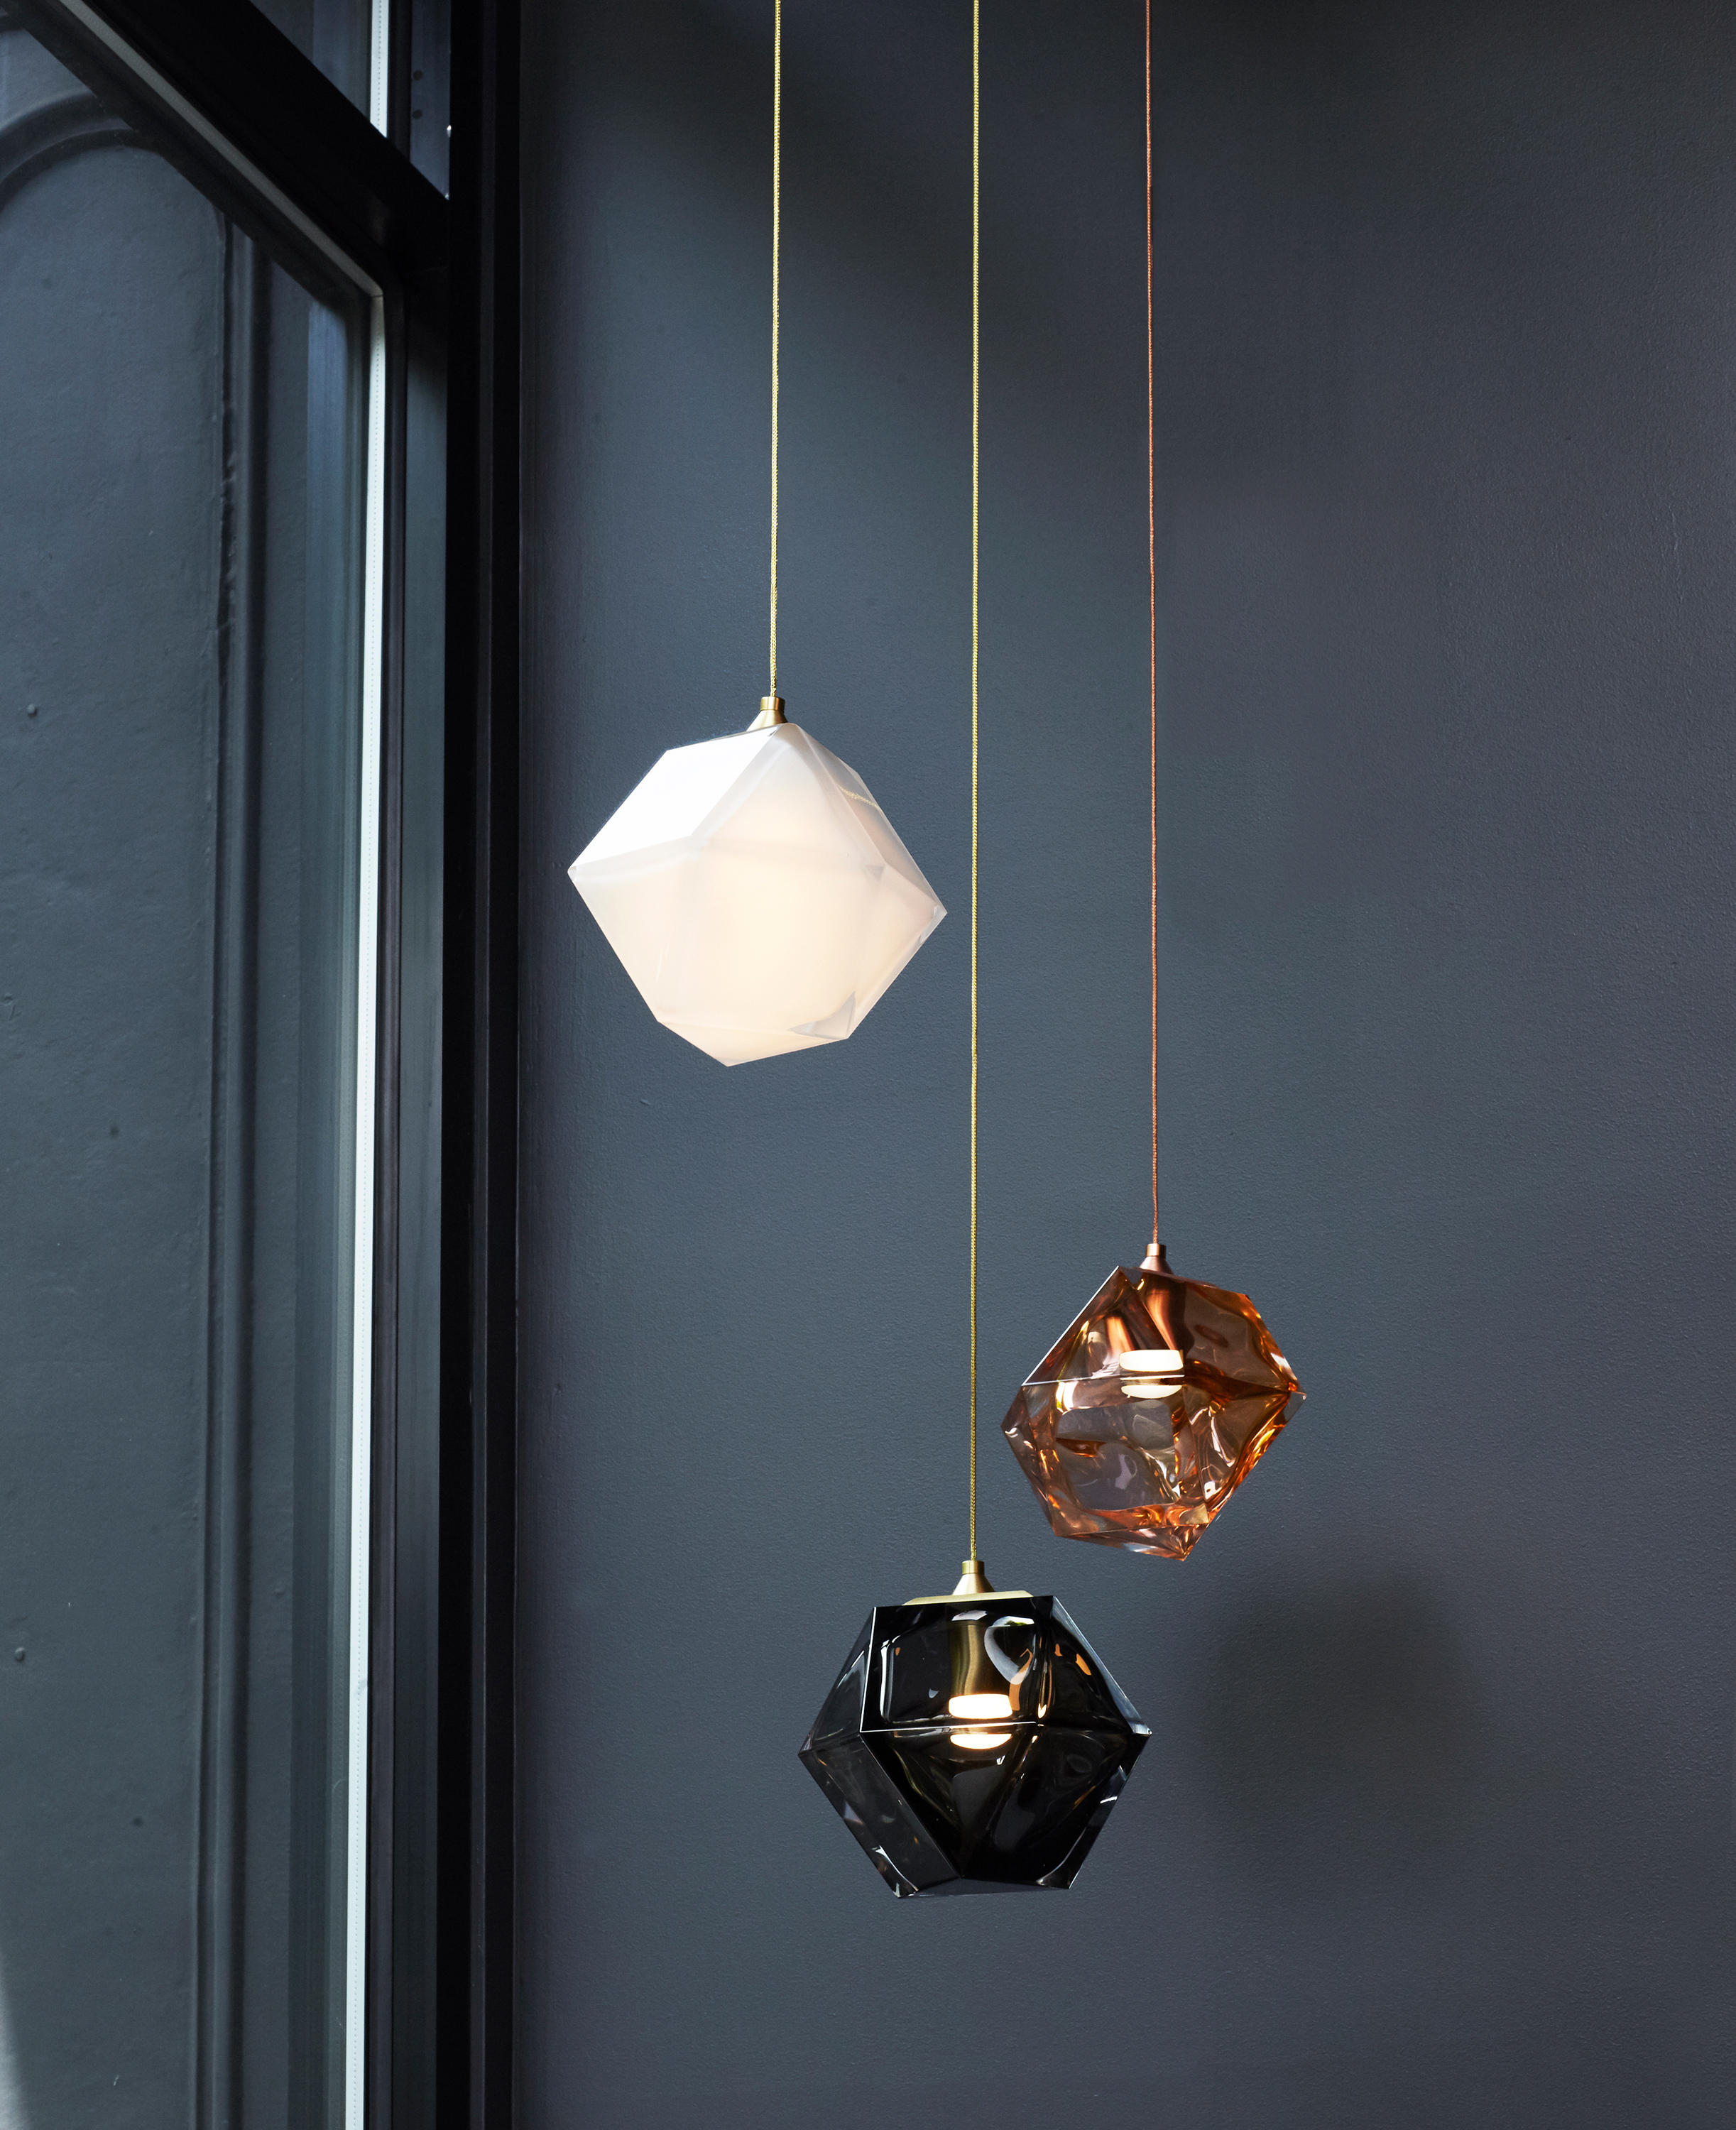 mstar metal light pendant style vintage hanging industrial edison glass ceiling copper antique shade with clear